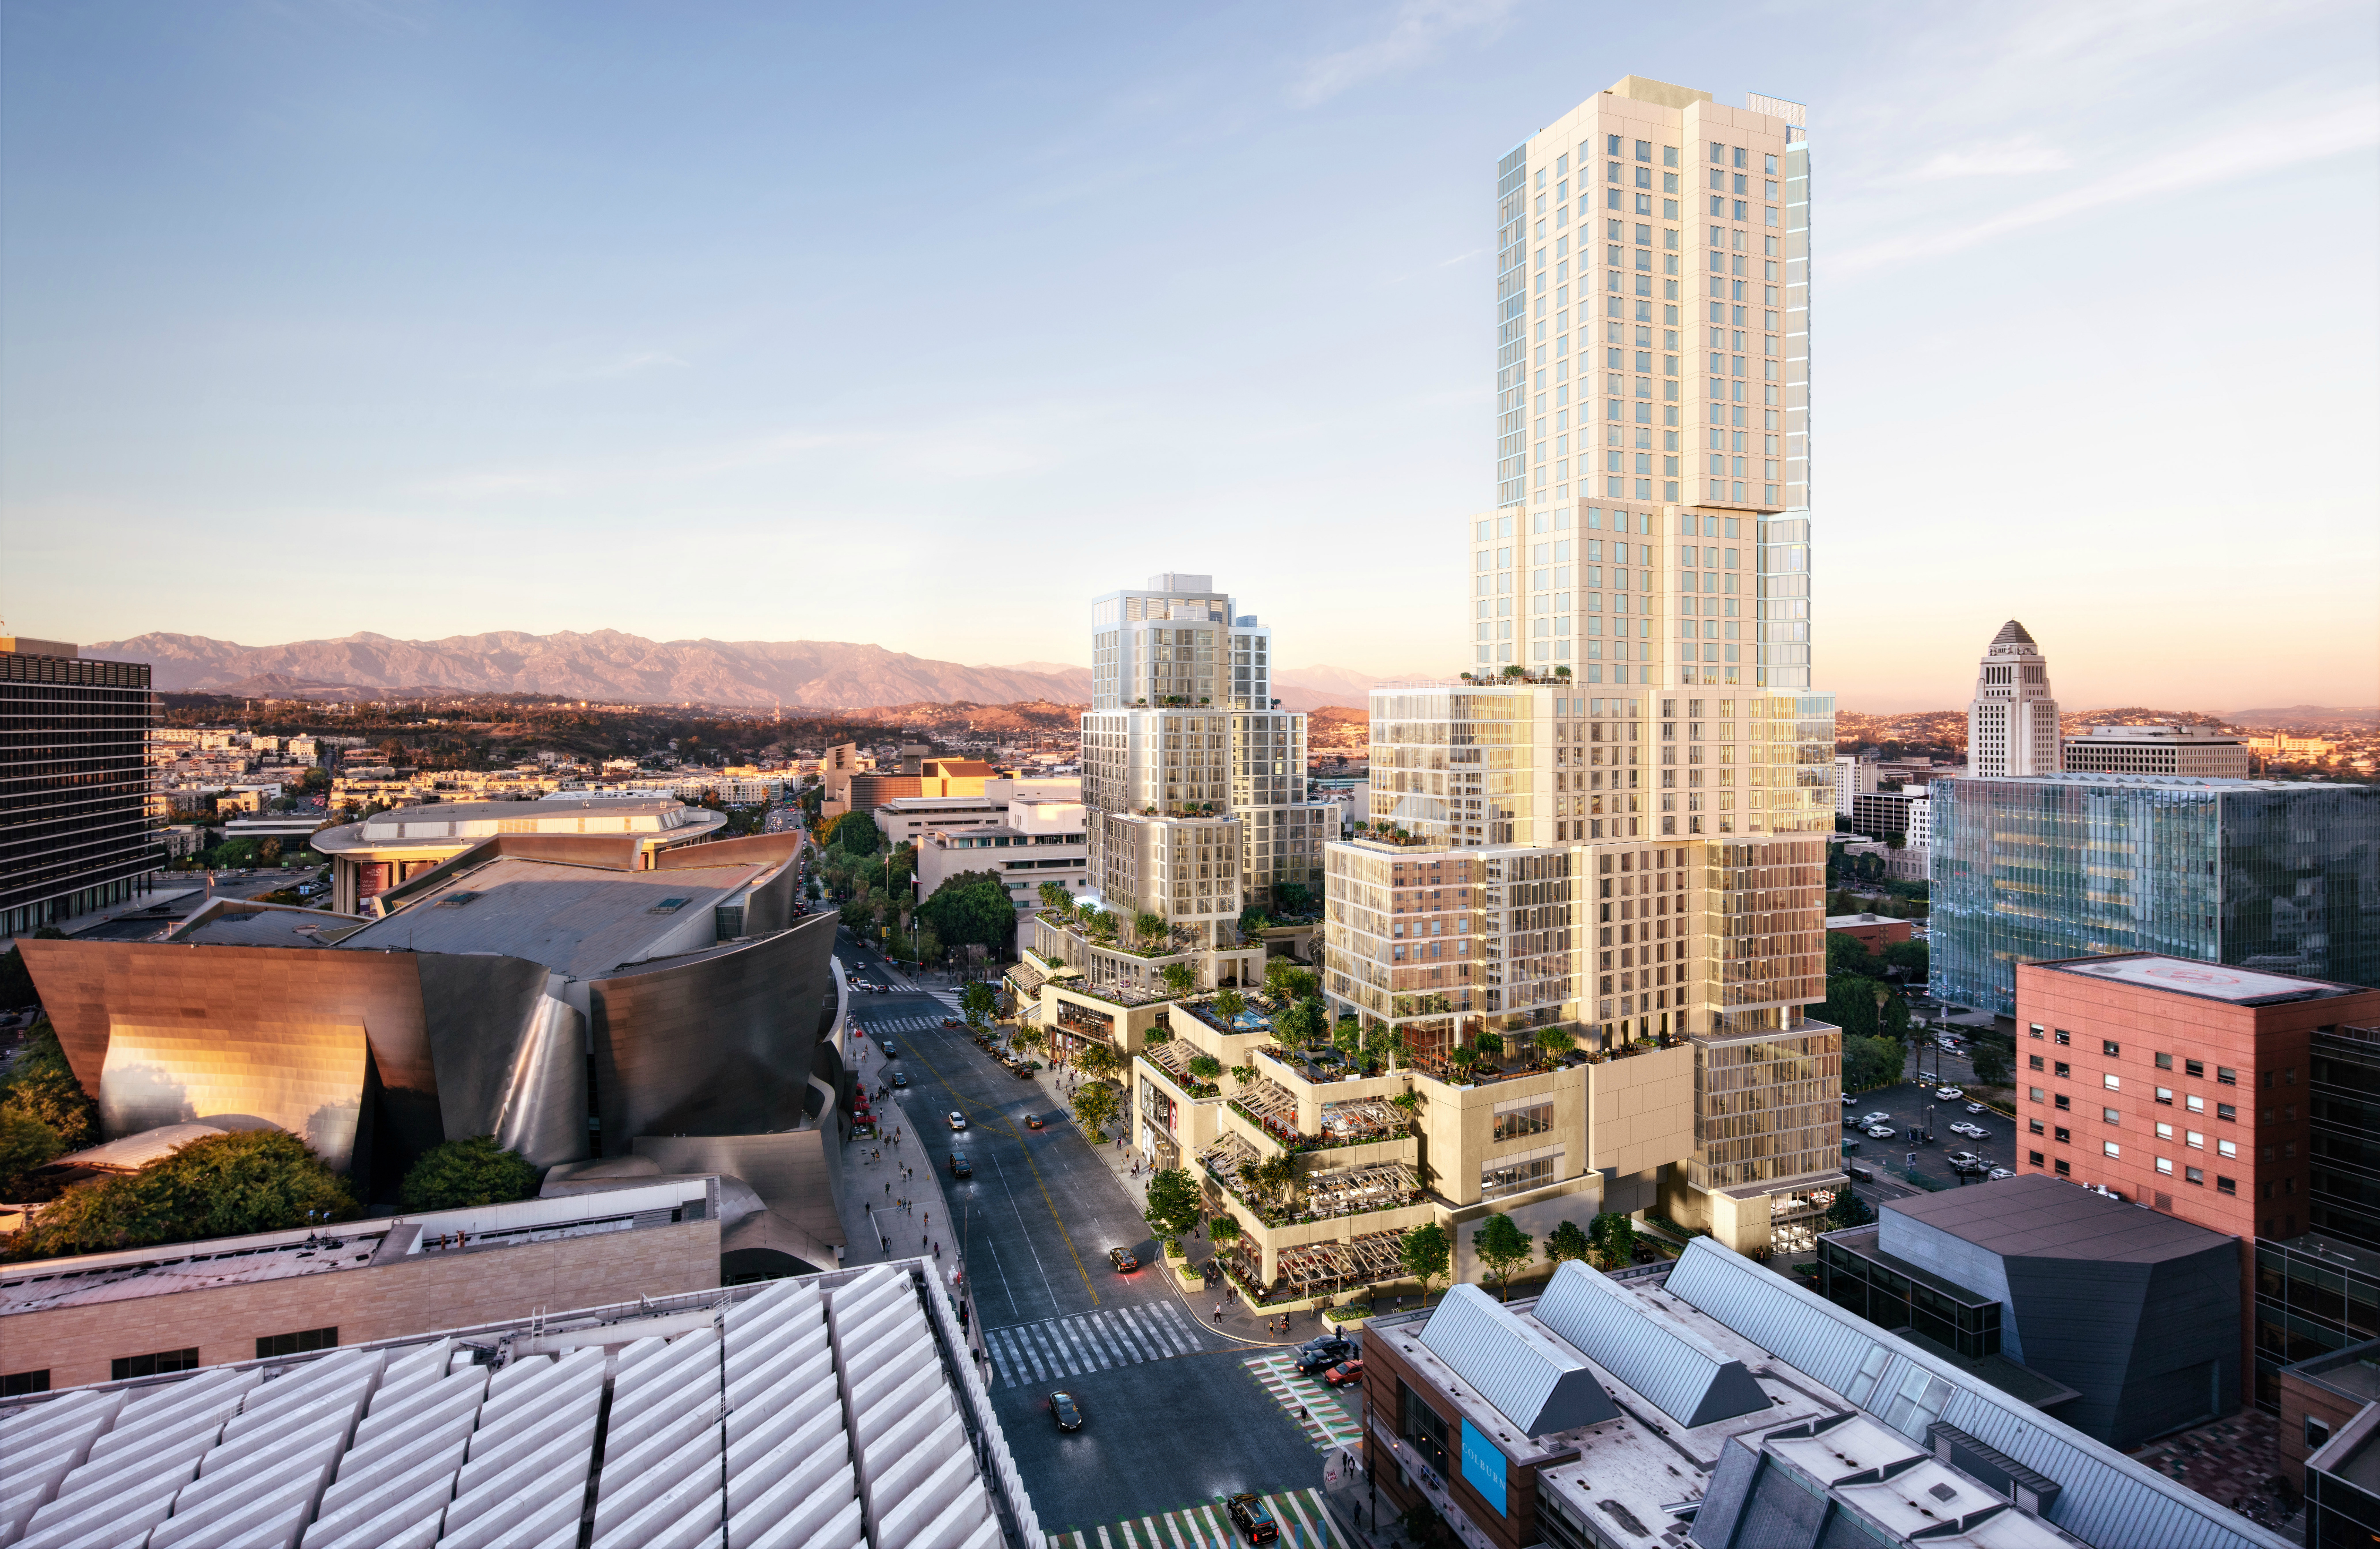 Take a Peek at Frank Gehry's New DTLA Tower